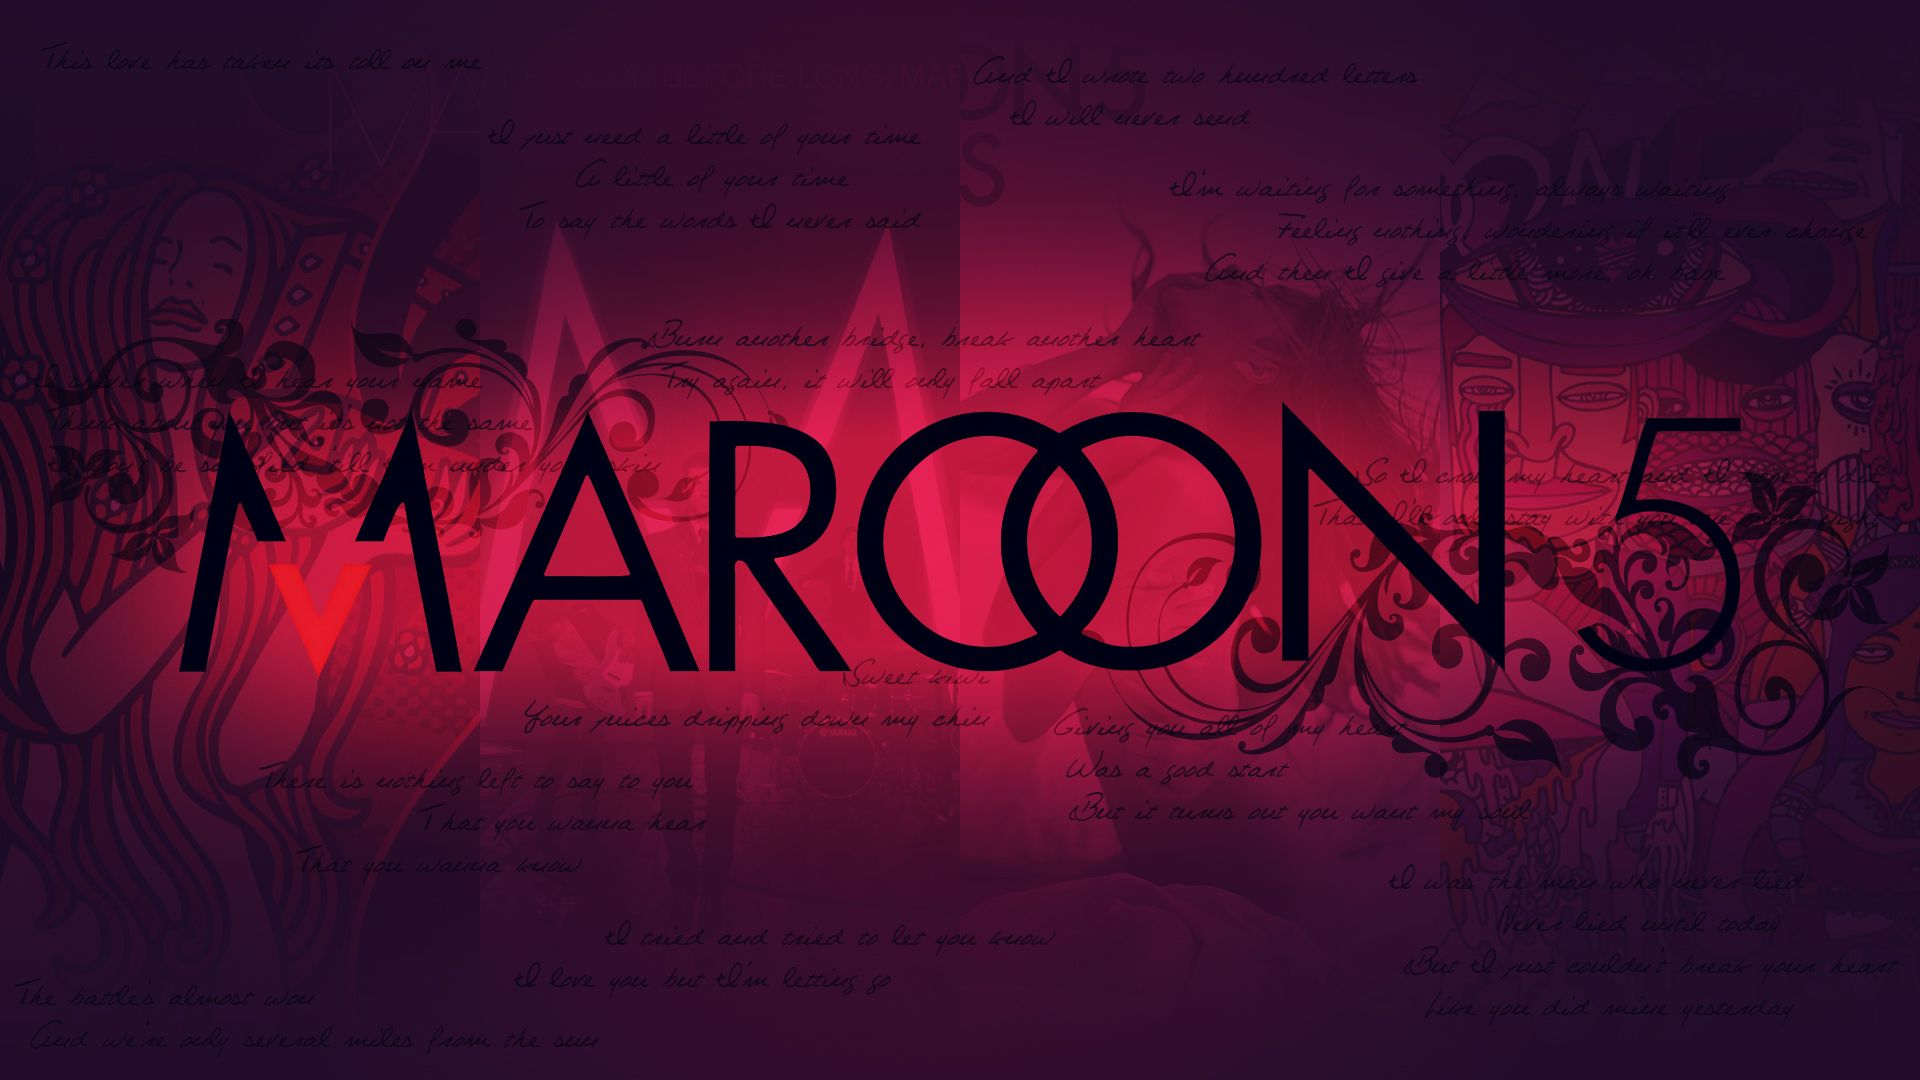 Logos Awesome And Maroon 5 On Pinterest Maroon 5 Maroon 5 Lyrics Maroon